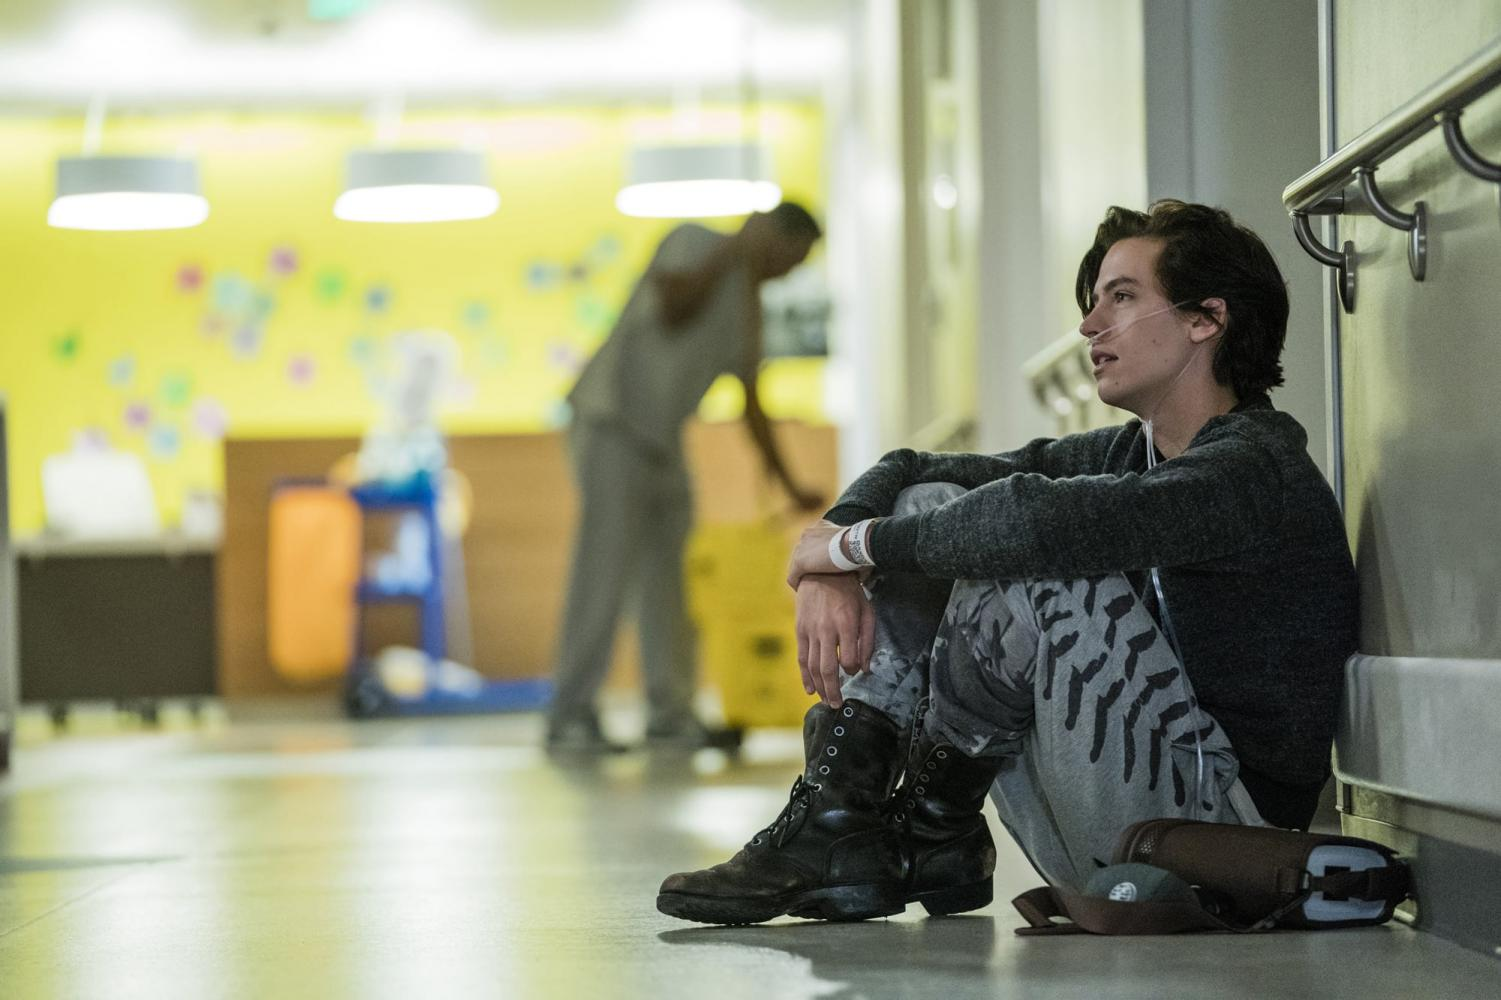 Cole Sprouse as Will in film adaptation, Five Feet Apart. (image from CBS films)